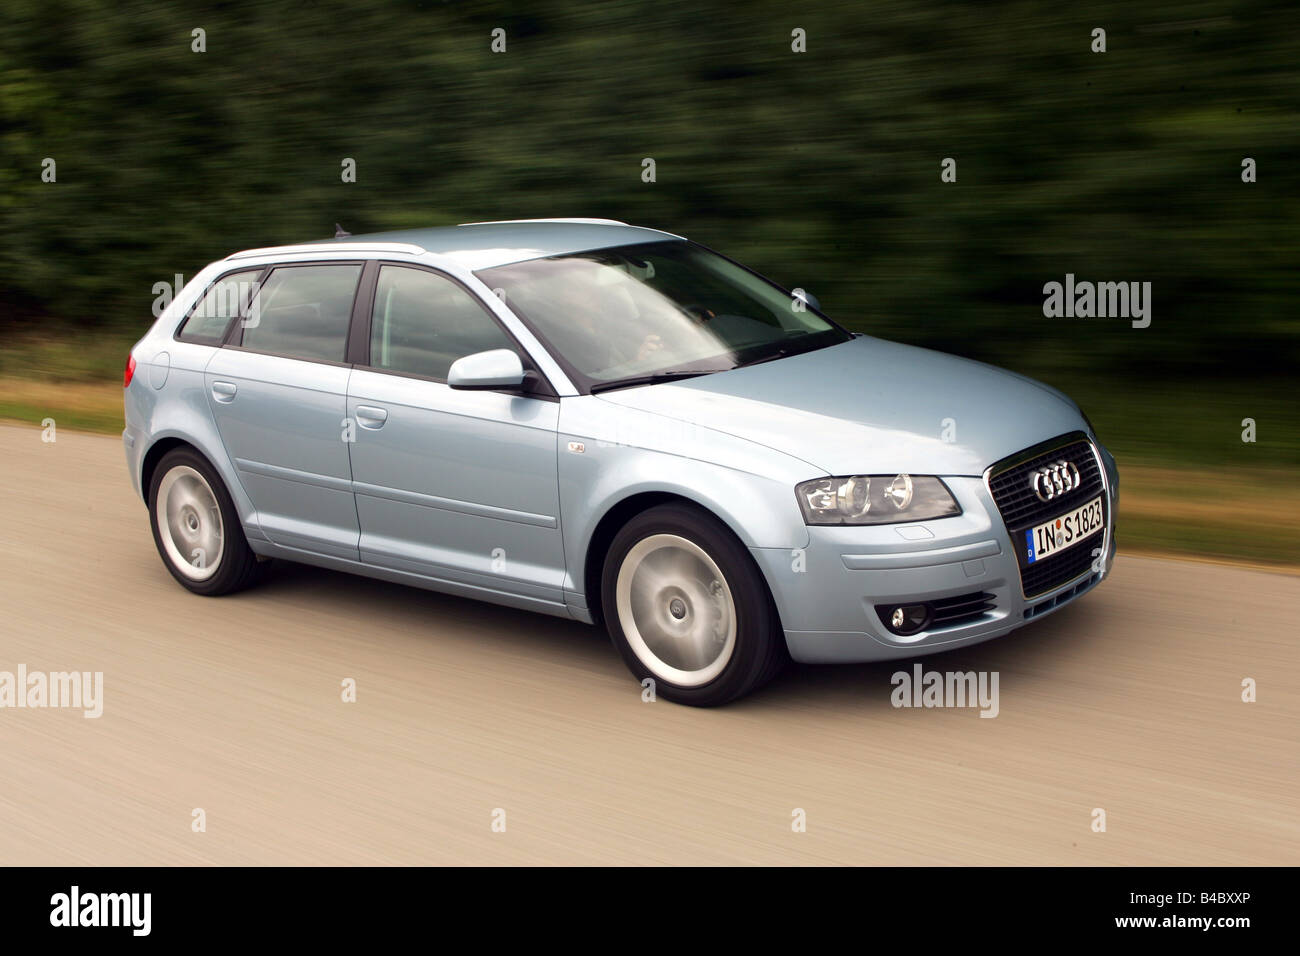 Car audi a3 sportback 2 0 tfsi model year 2004 hatchback lower middle sized class silver blue moving diagonal from the fr